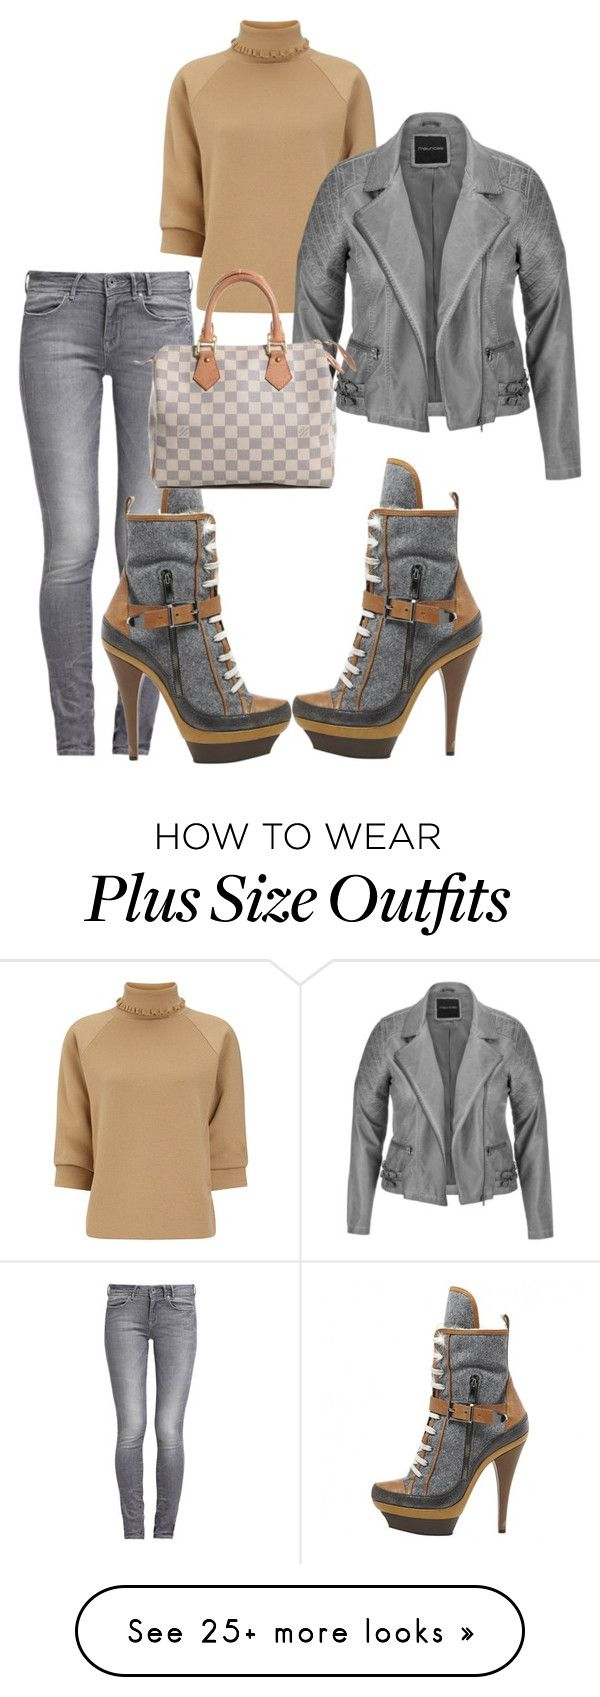 """Untitled #1554"" by styledbycharlieb on Polyvore featuring GUESS, J.W. Anderson, Barbara Bui, maurices and Louis Vuitton"